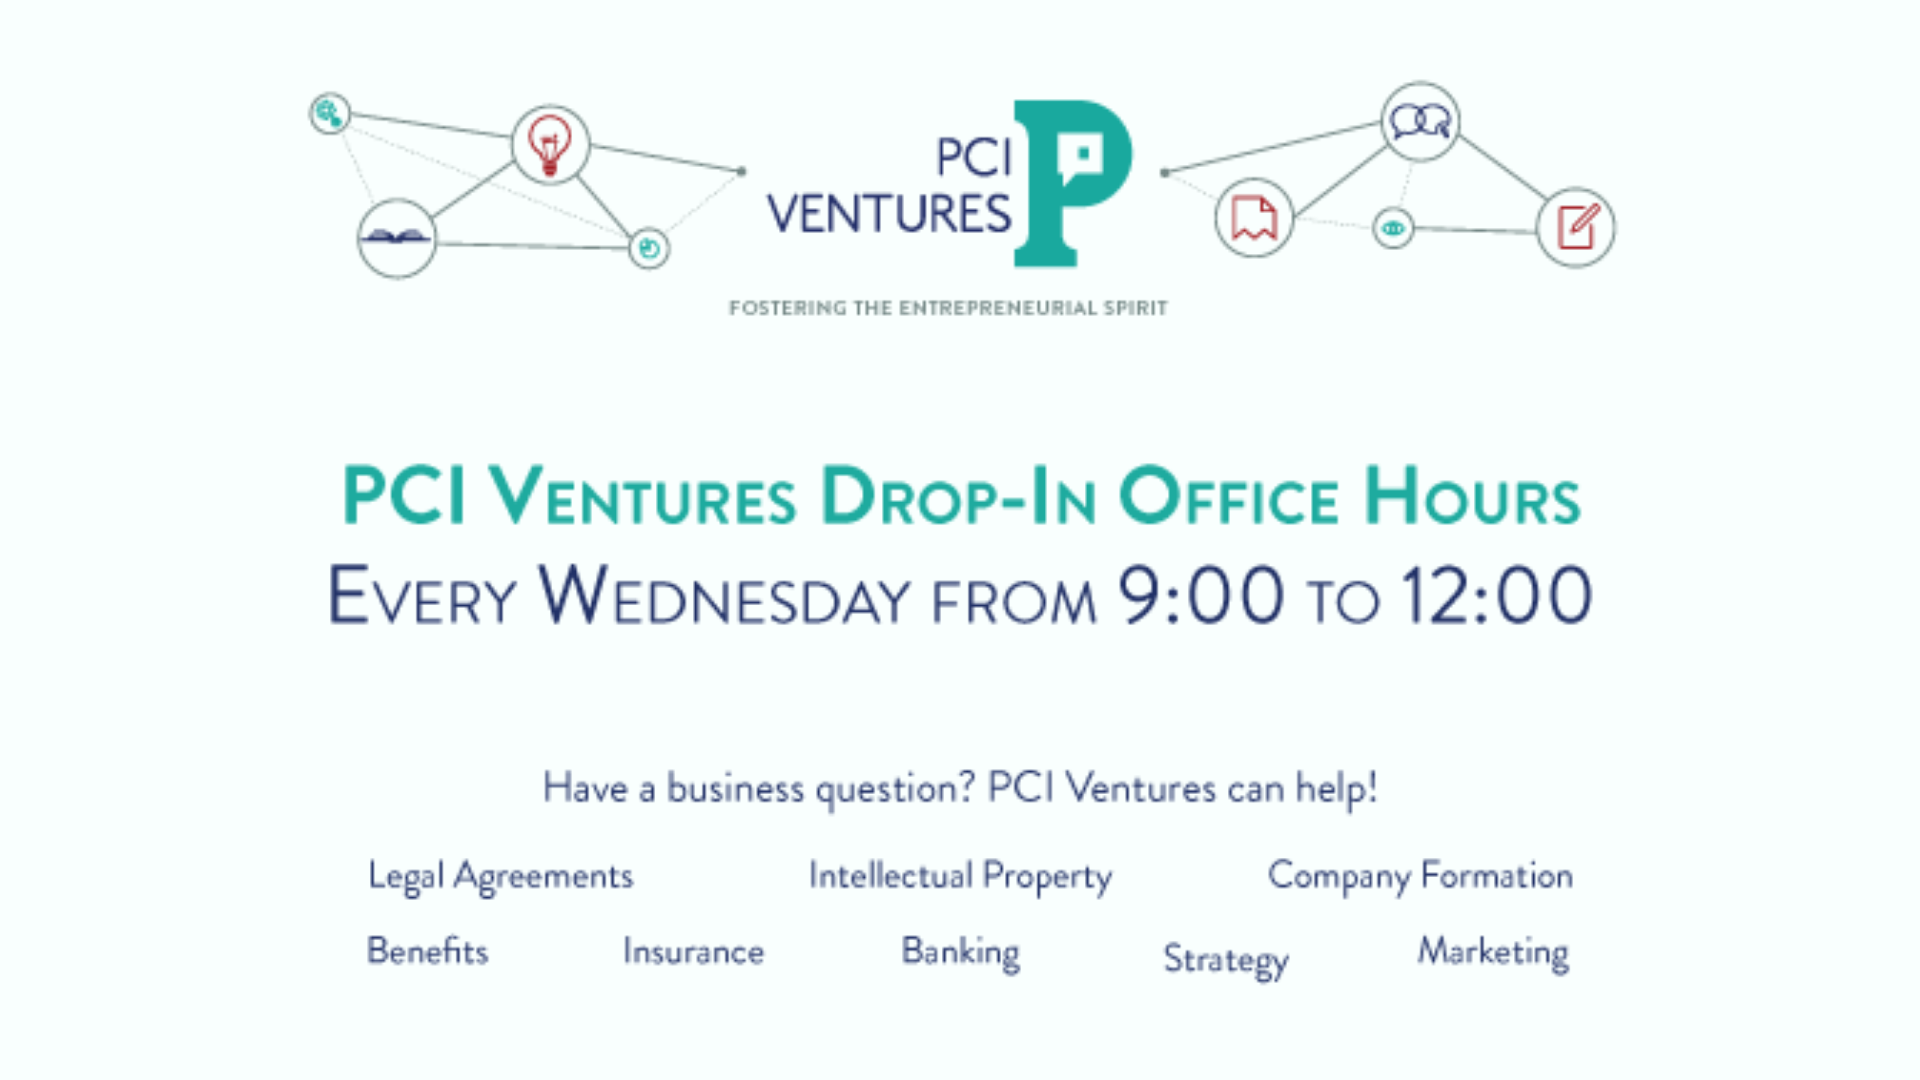 PCIV Office Hours graphic with logo and topics covered